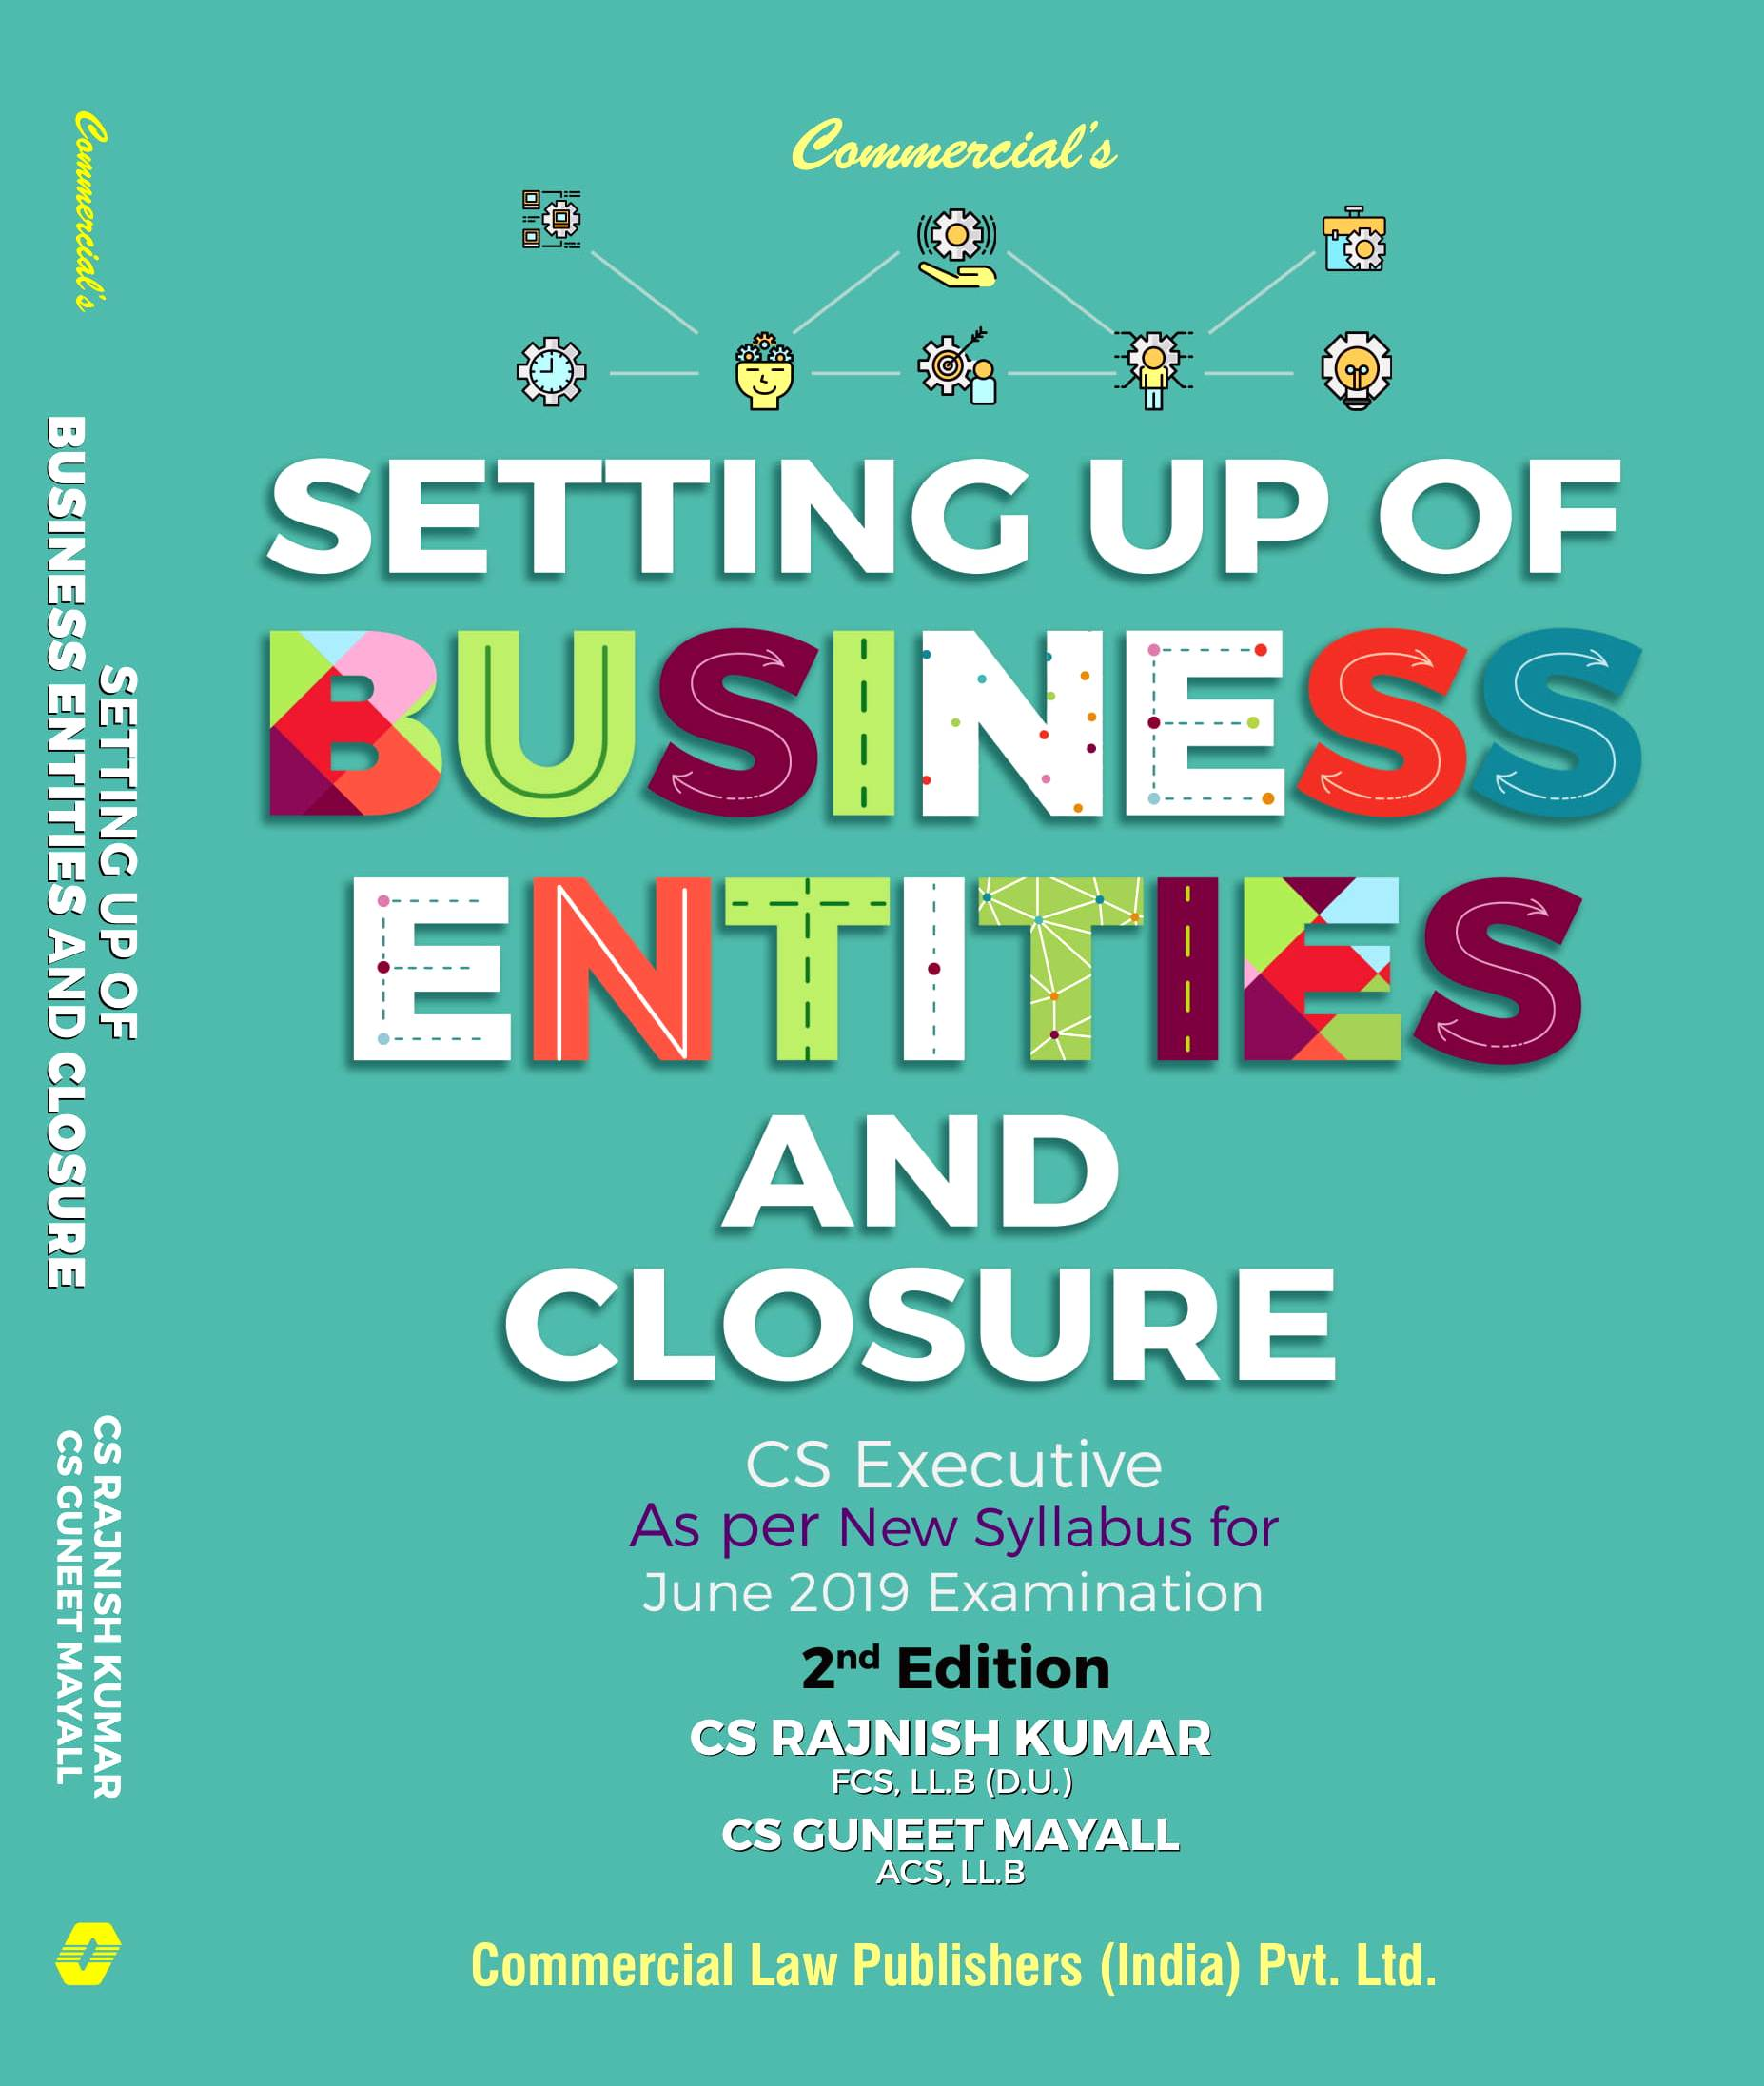 Commercial CS Executive New Syllabus Setting up of Business Entities and Closure By Rajnish Kumar , Guneet Mayall Applicable for June 2019 Exam